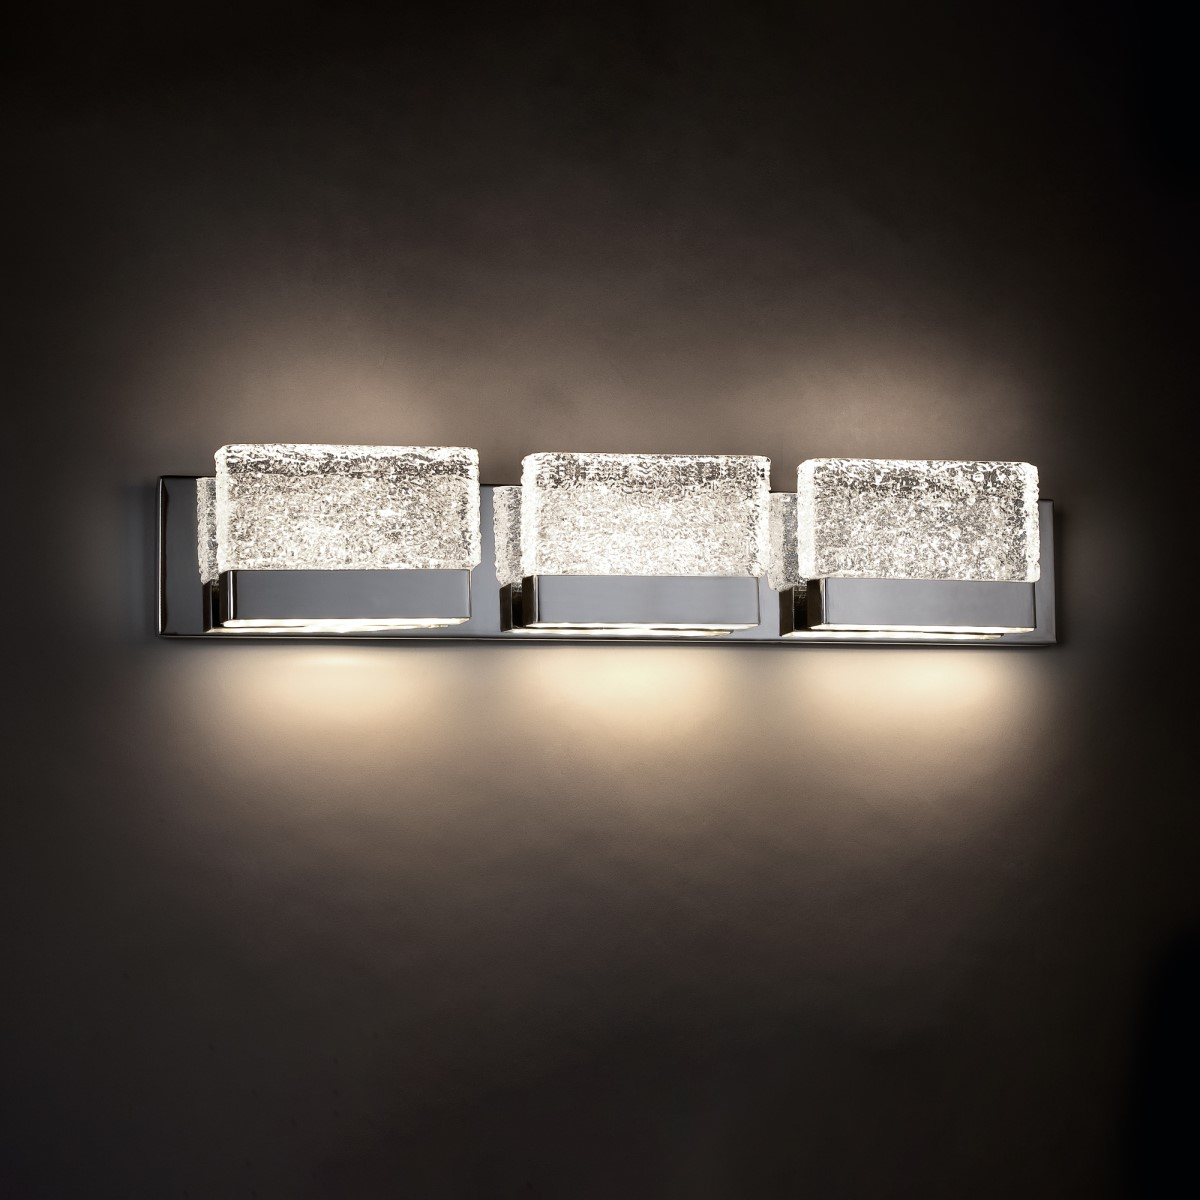 Glacier lighting product